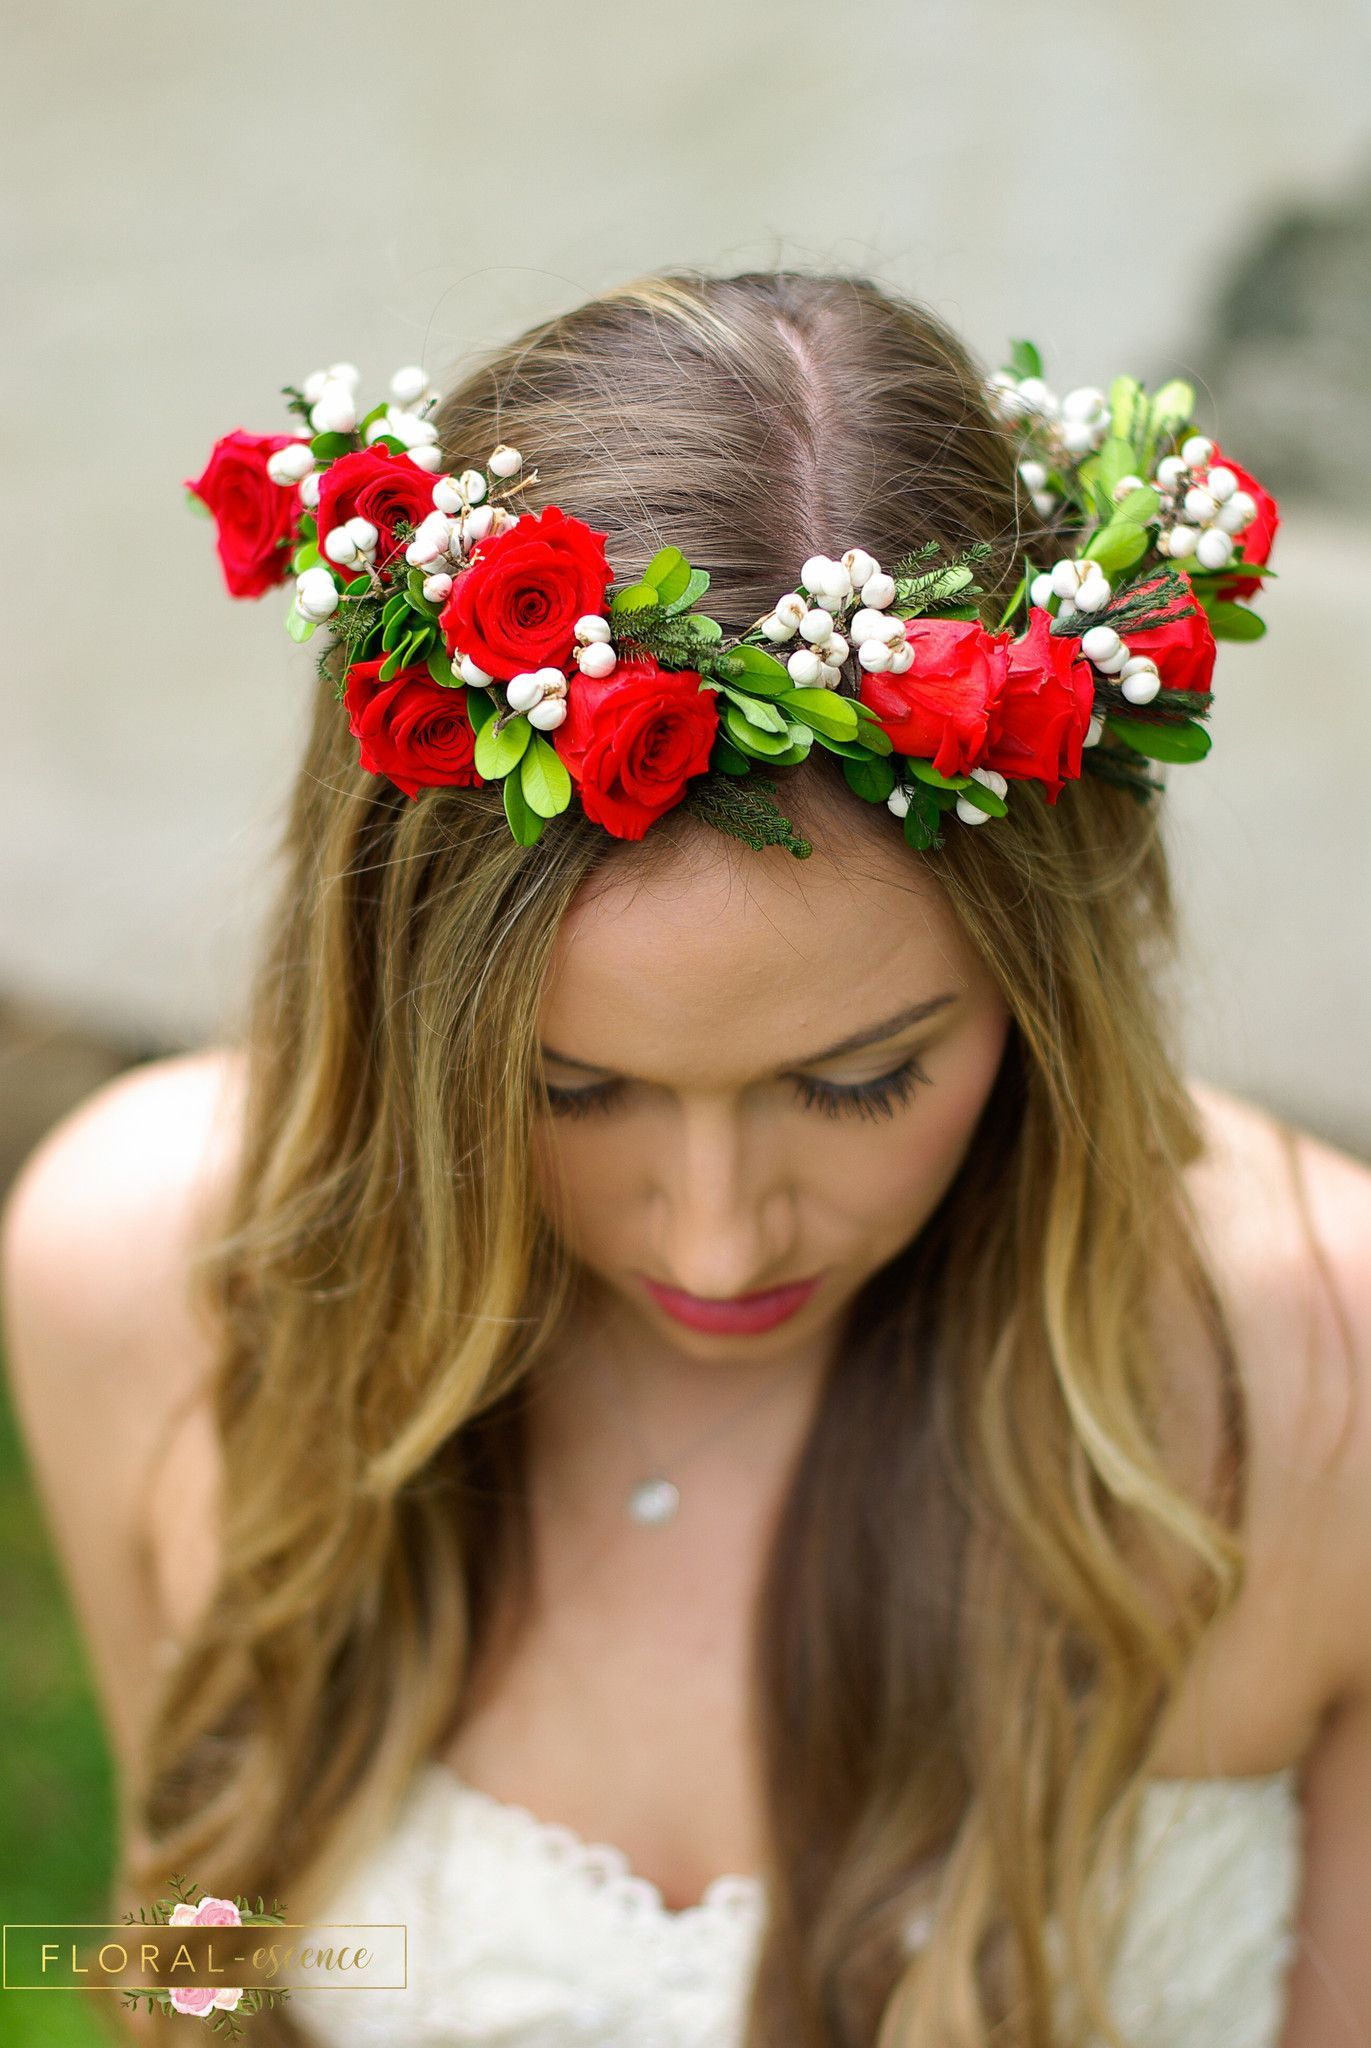 Gorgeous Red Rose Flower Crown With White Tallow Berries Is Perfect